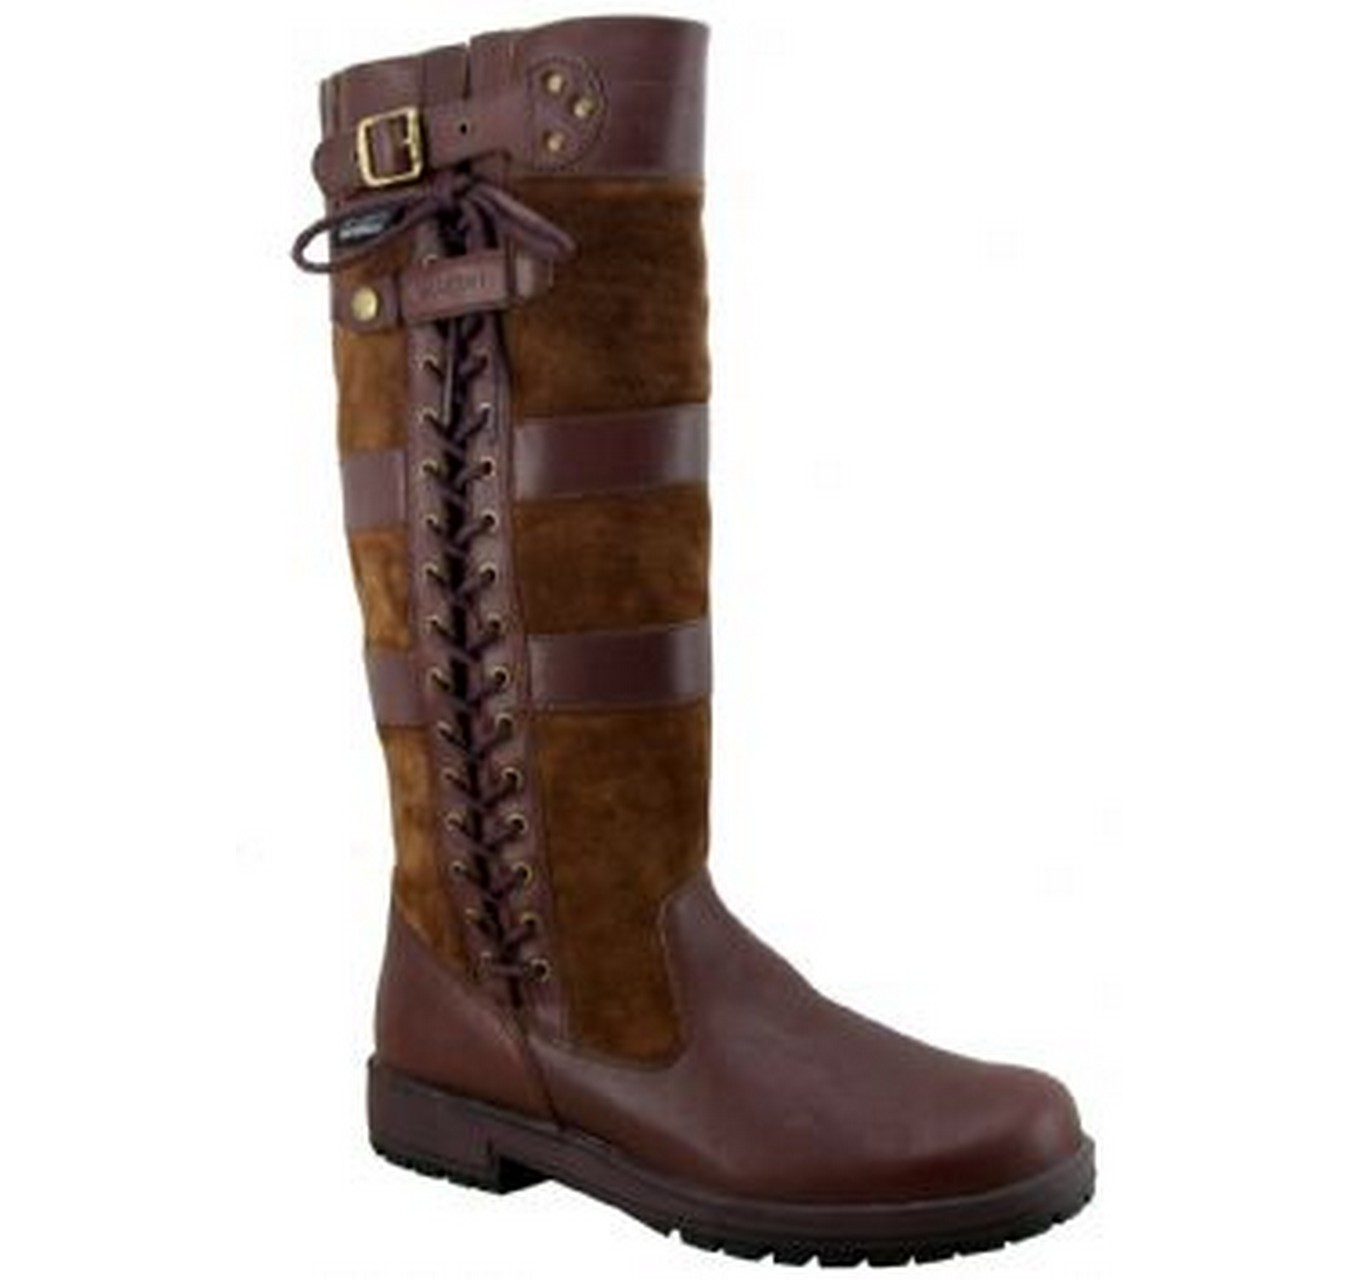 Yew Waterproof Country Boot 8